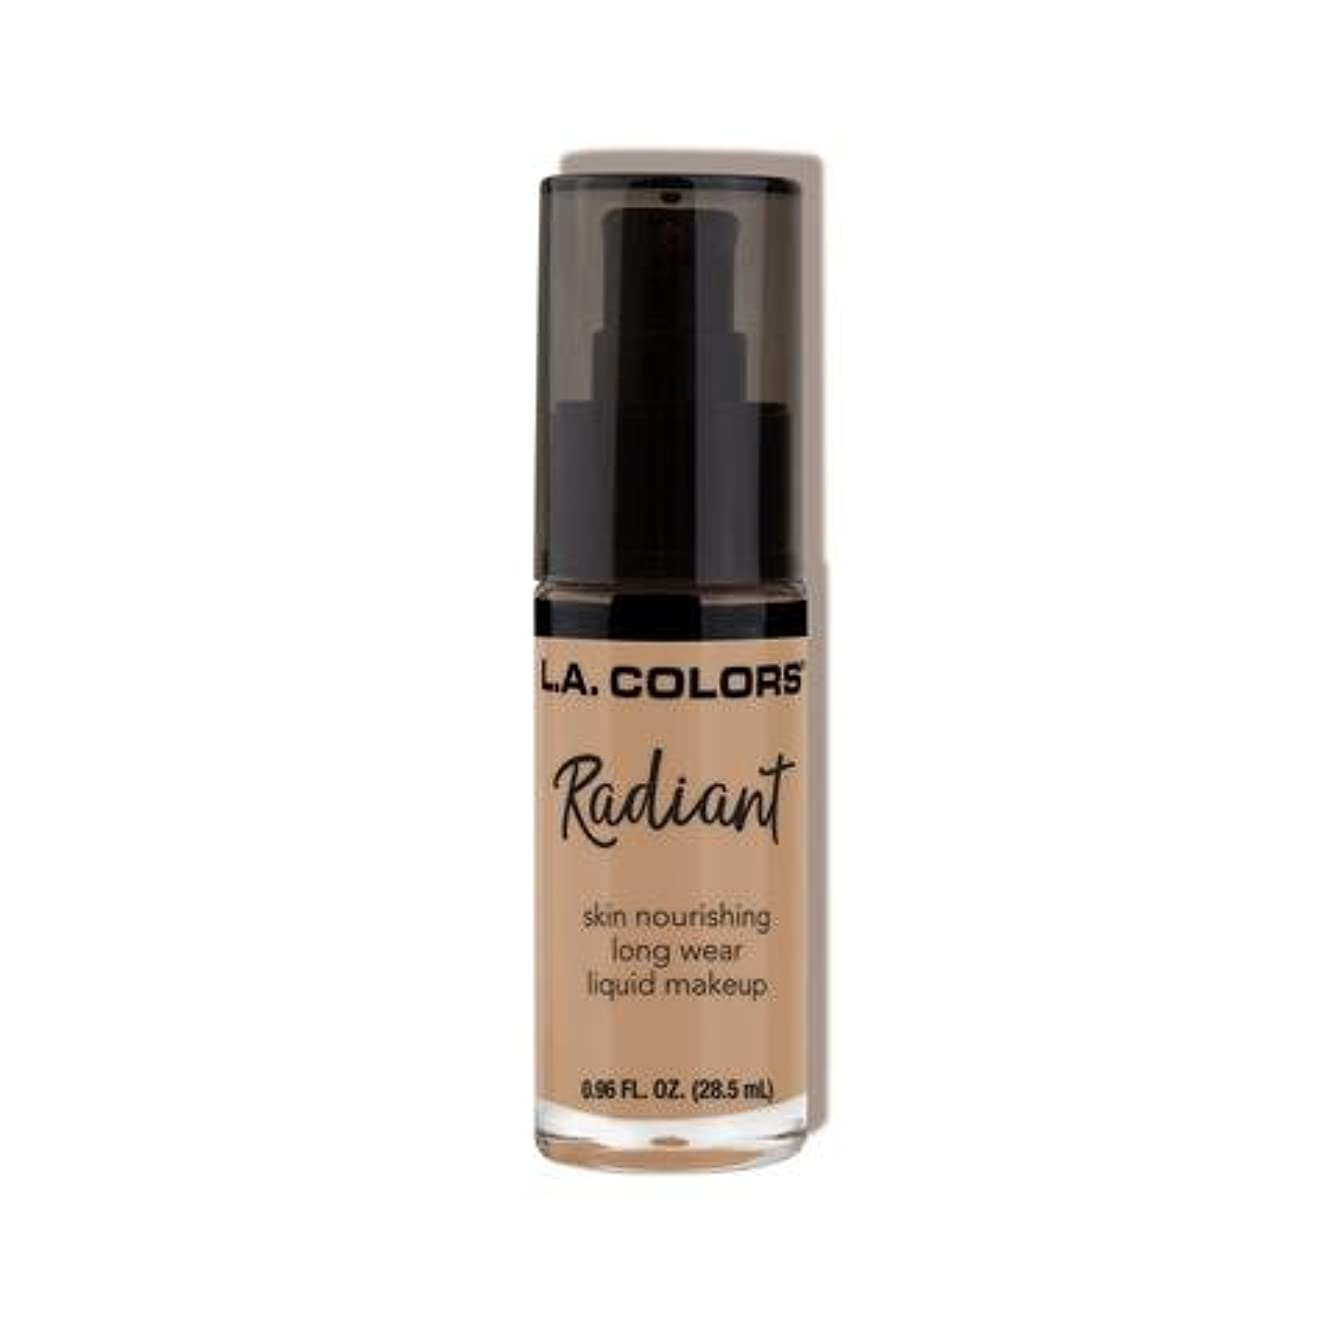 申請者デッキ眉(3 Pack) L.A. COLORS Radiant Liquid Makeup - Medium Beige (並行輸入品)